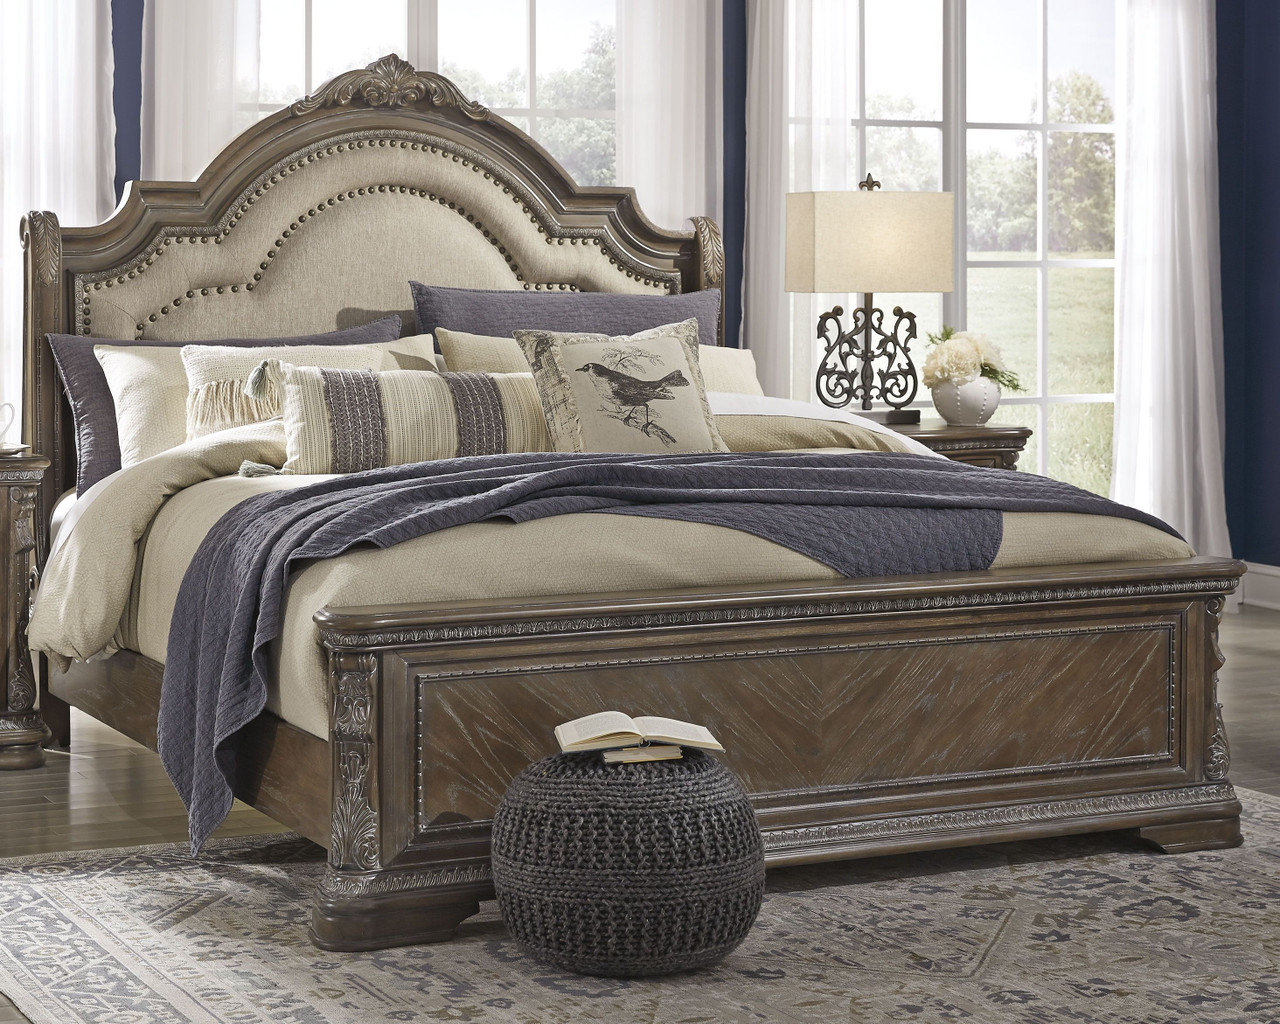 Charmond Brown California King Upholstered Sleigh Bed On Sale At American Furniture Of Slidell Serving Slidell La